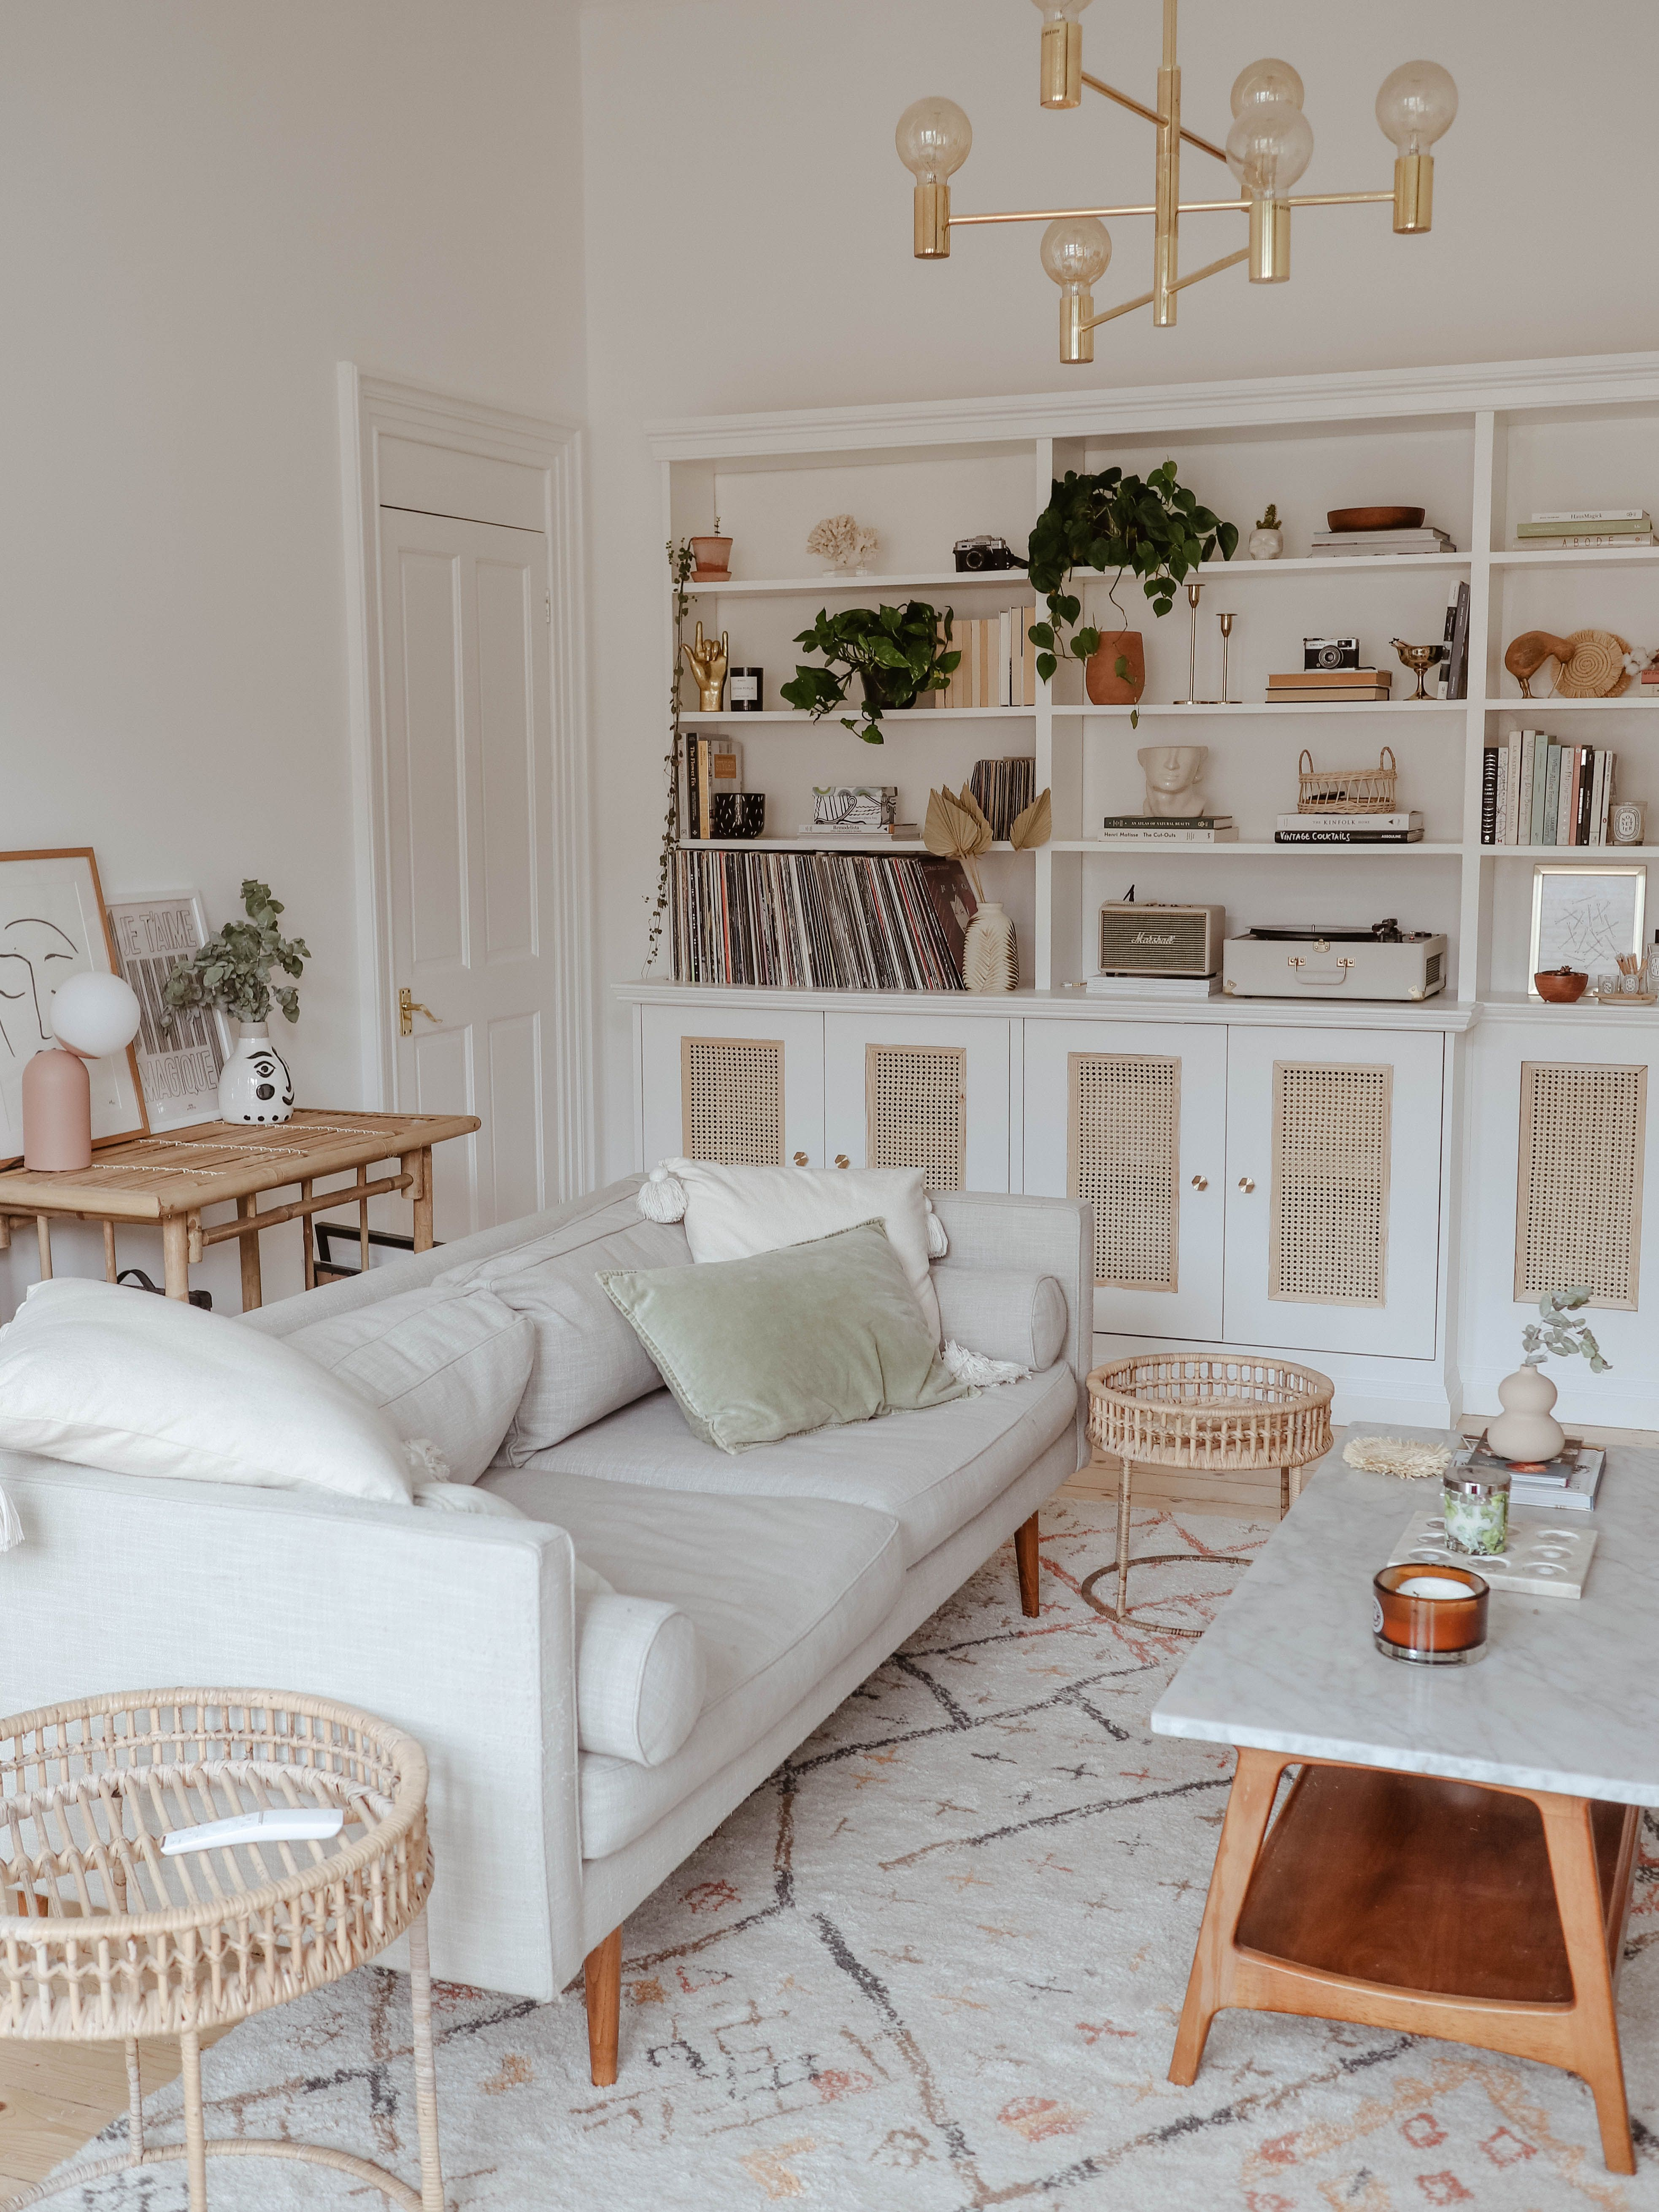 A Tour Of Our New Shelving. KATE LA VIE // living room